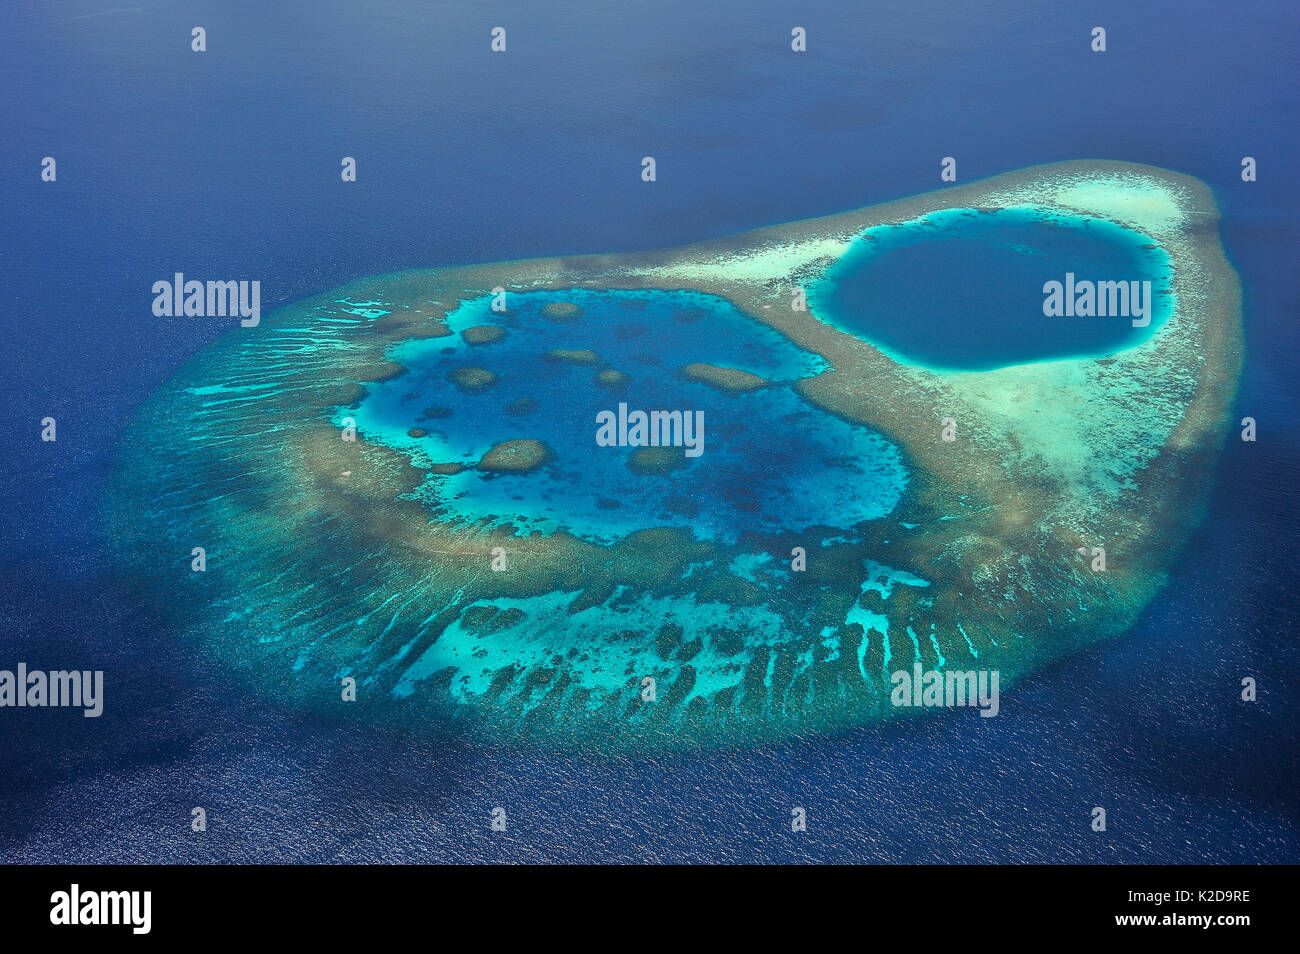 Aerial view of the coral reef which builds a lagoon in the atoll, Maldives, Indian Ocean - Stock Image